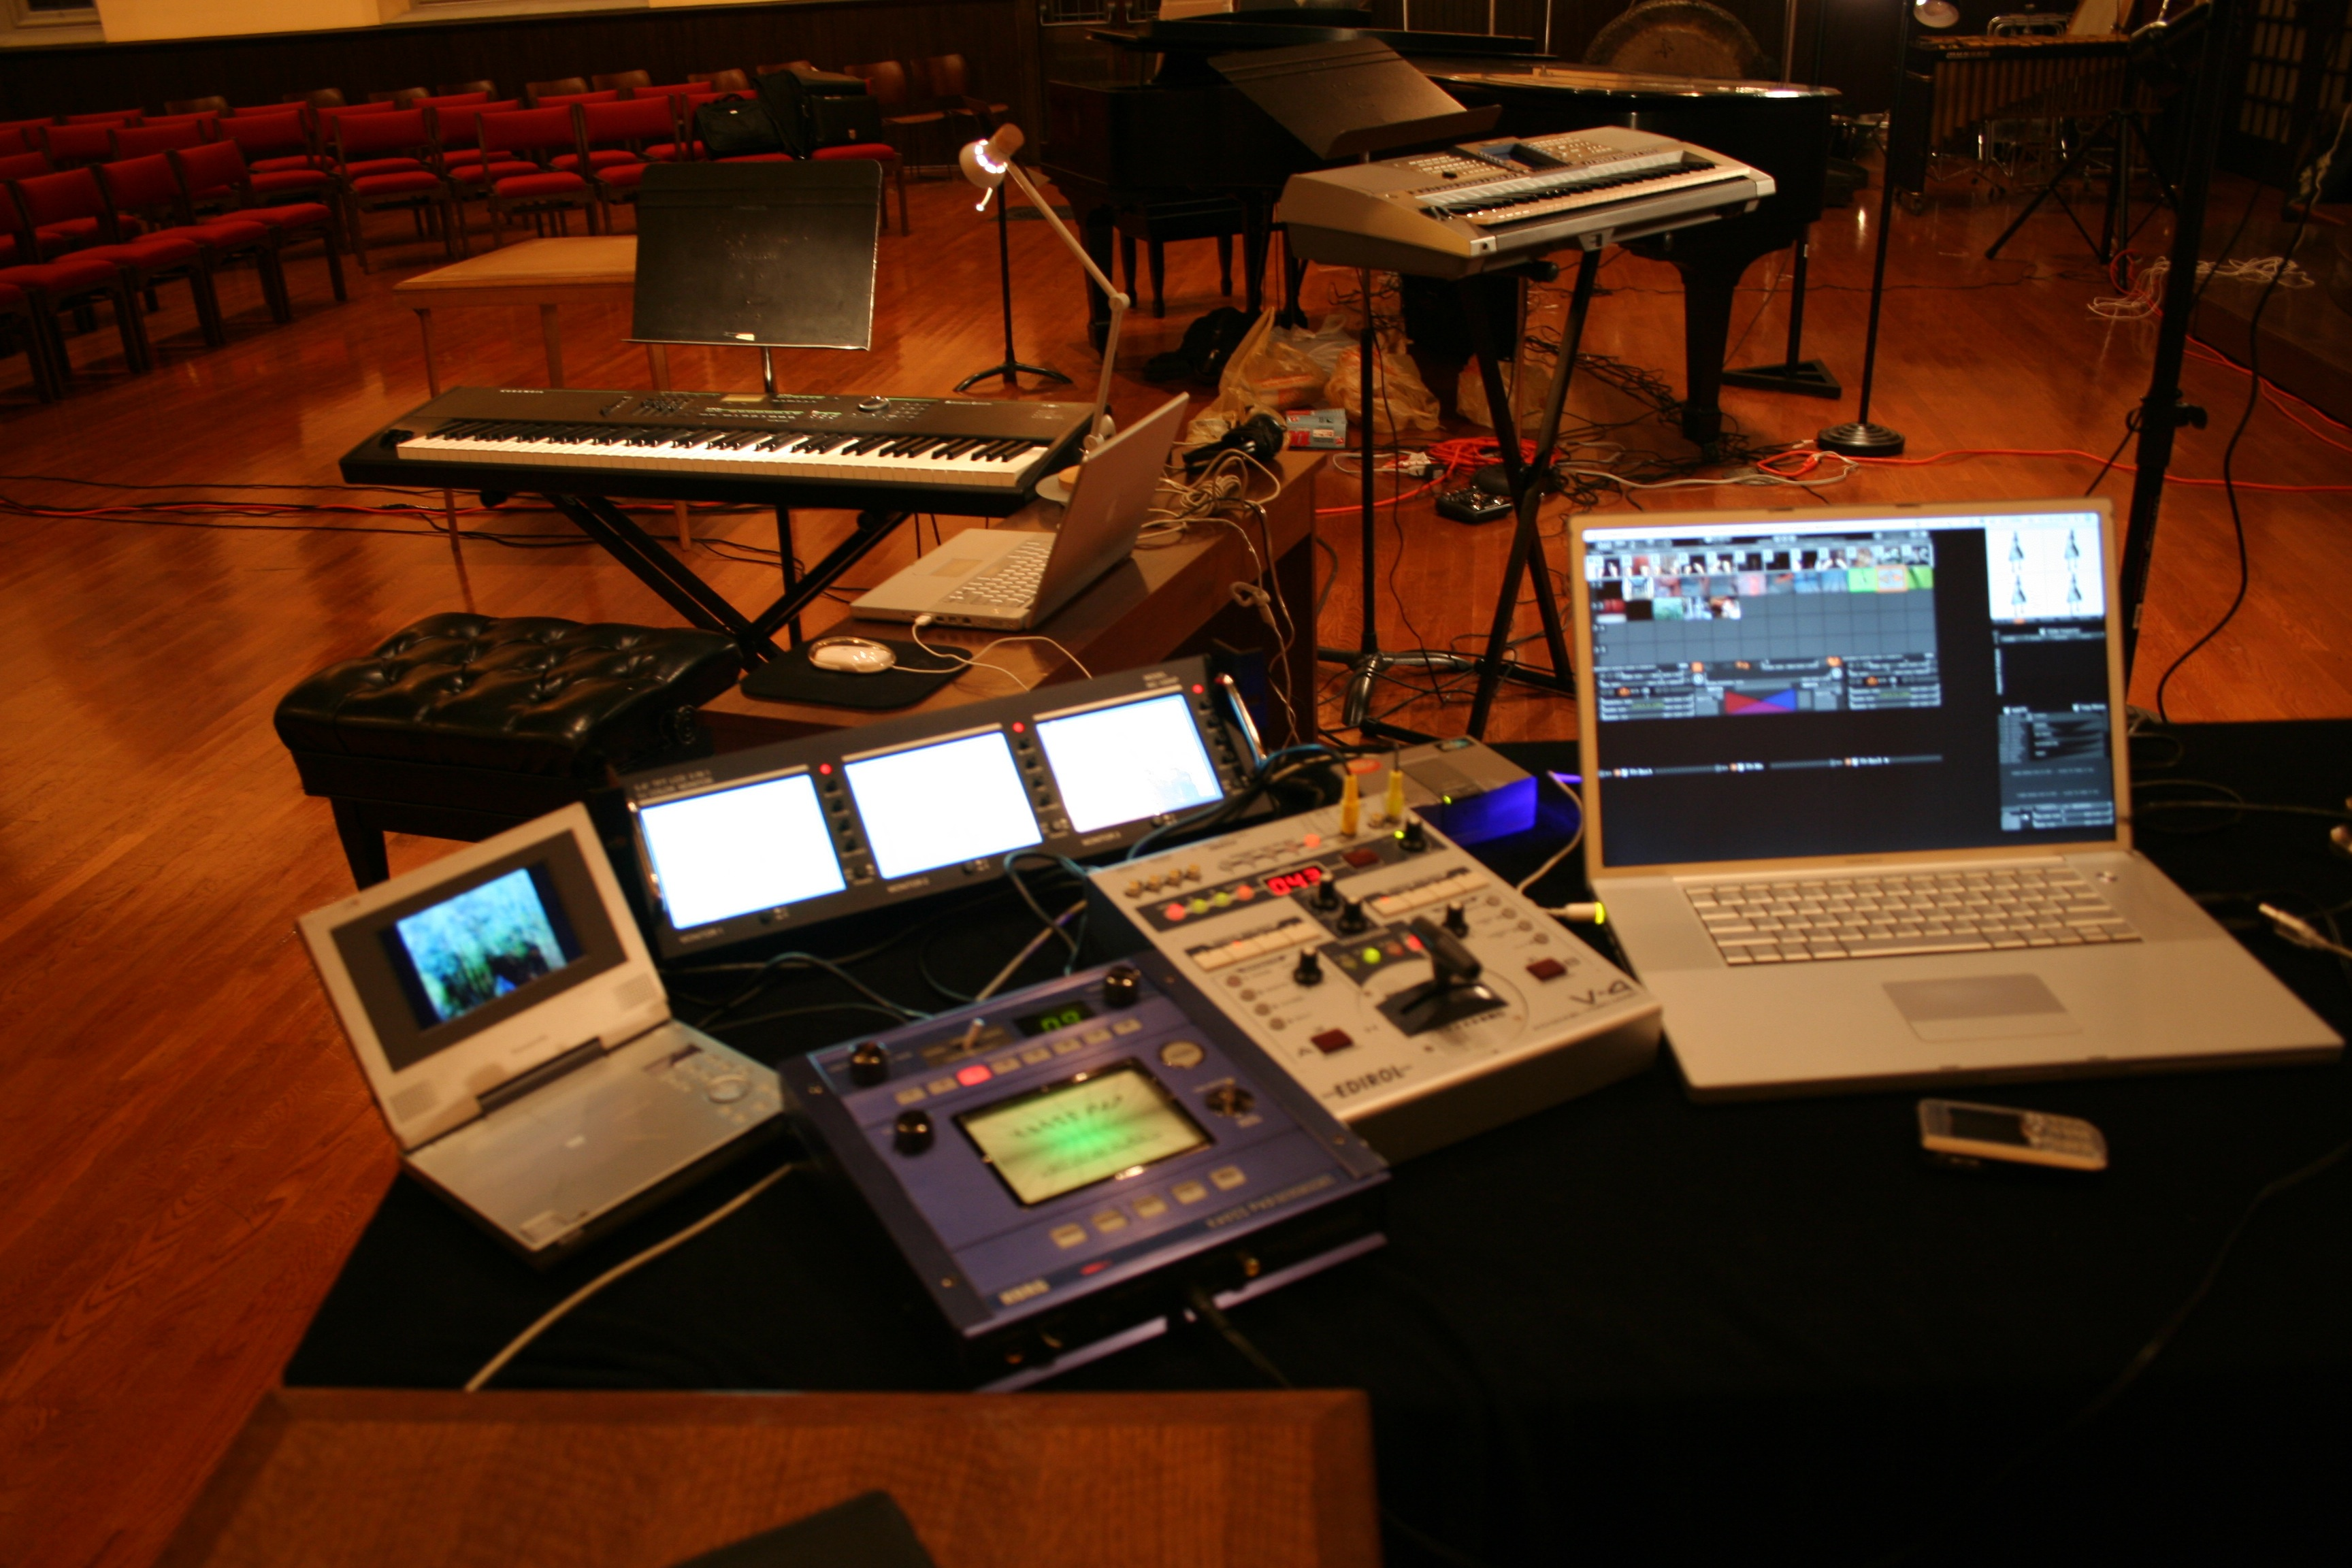 File:VJ-hardware-and-laptop.jpg - Wikimedia Commonsvj